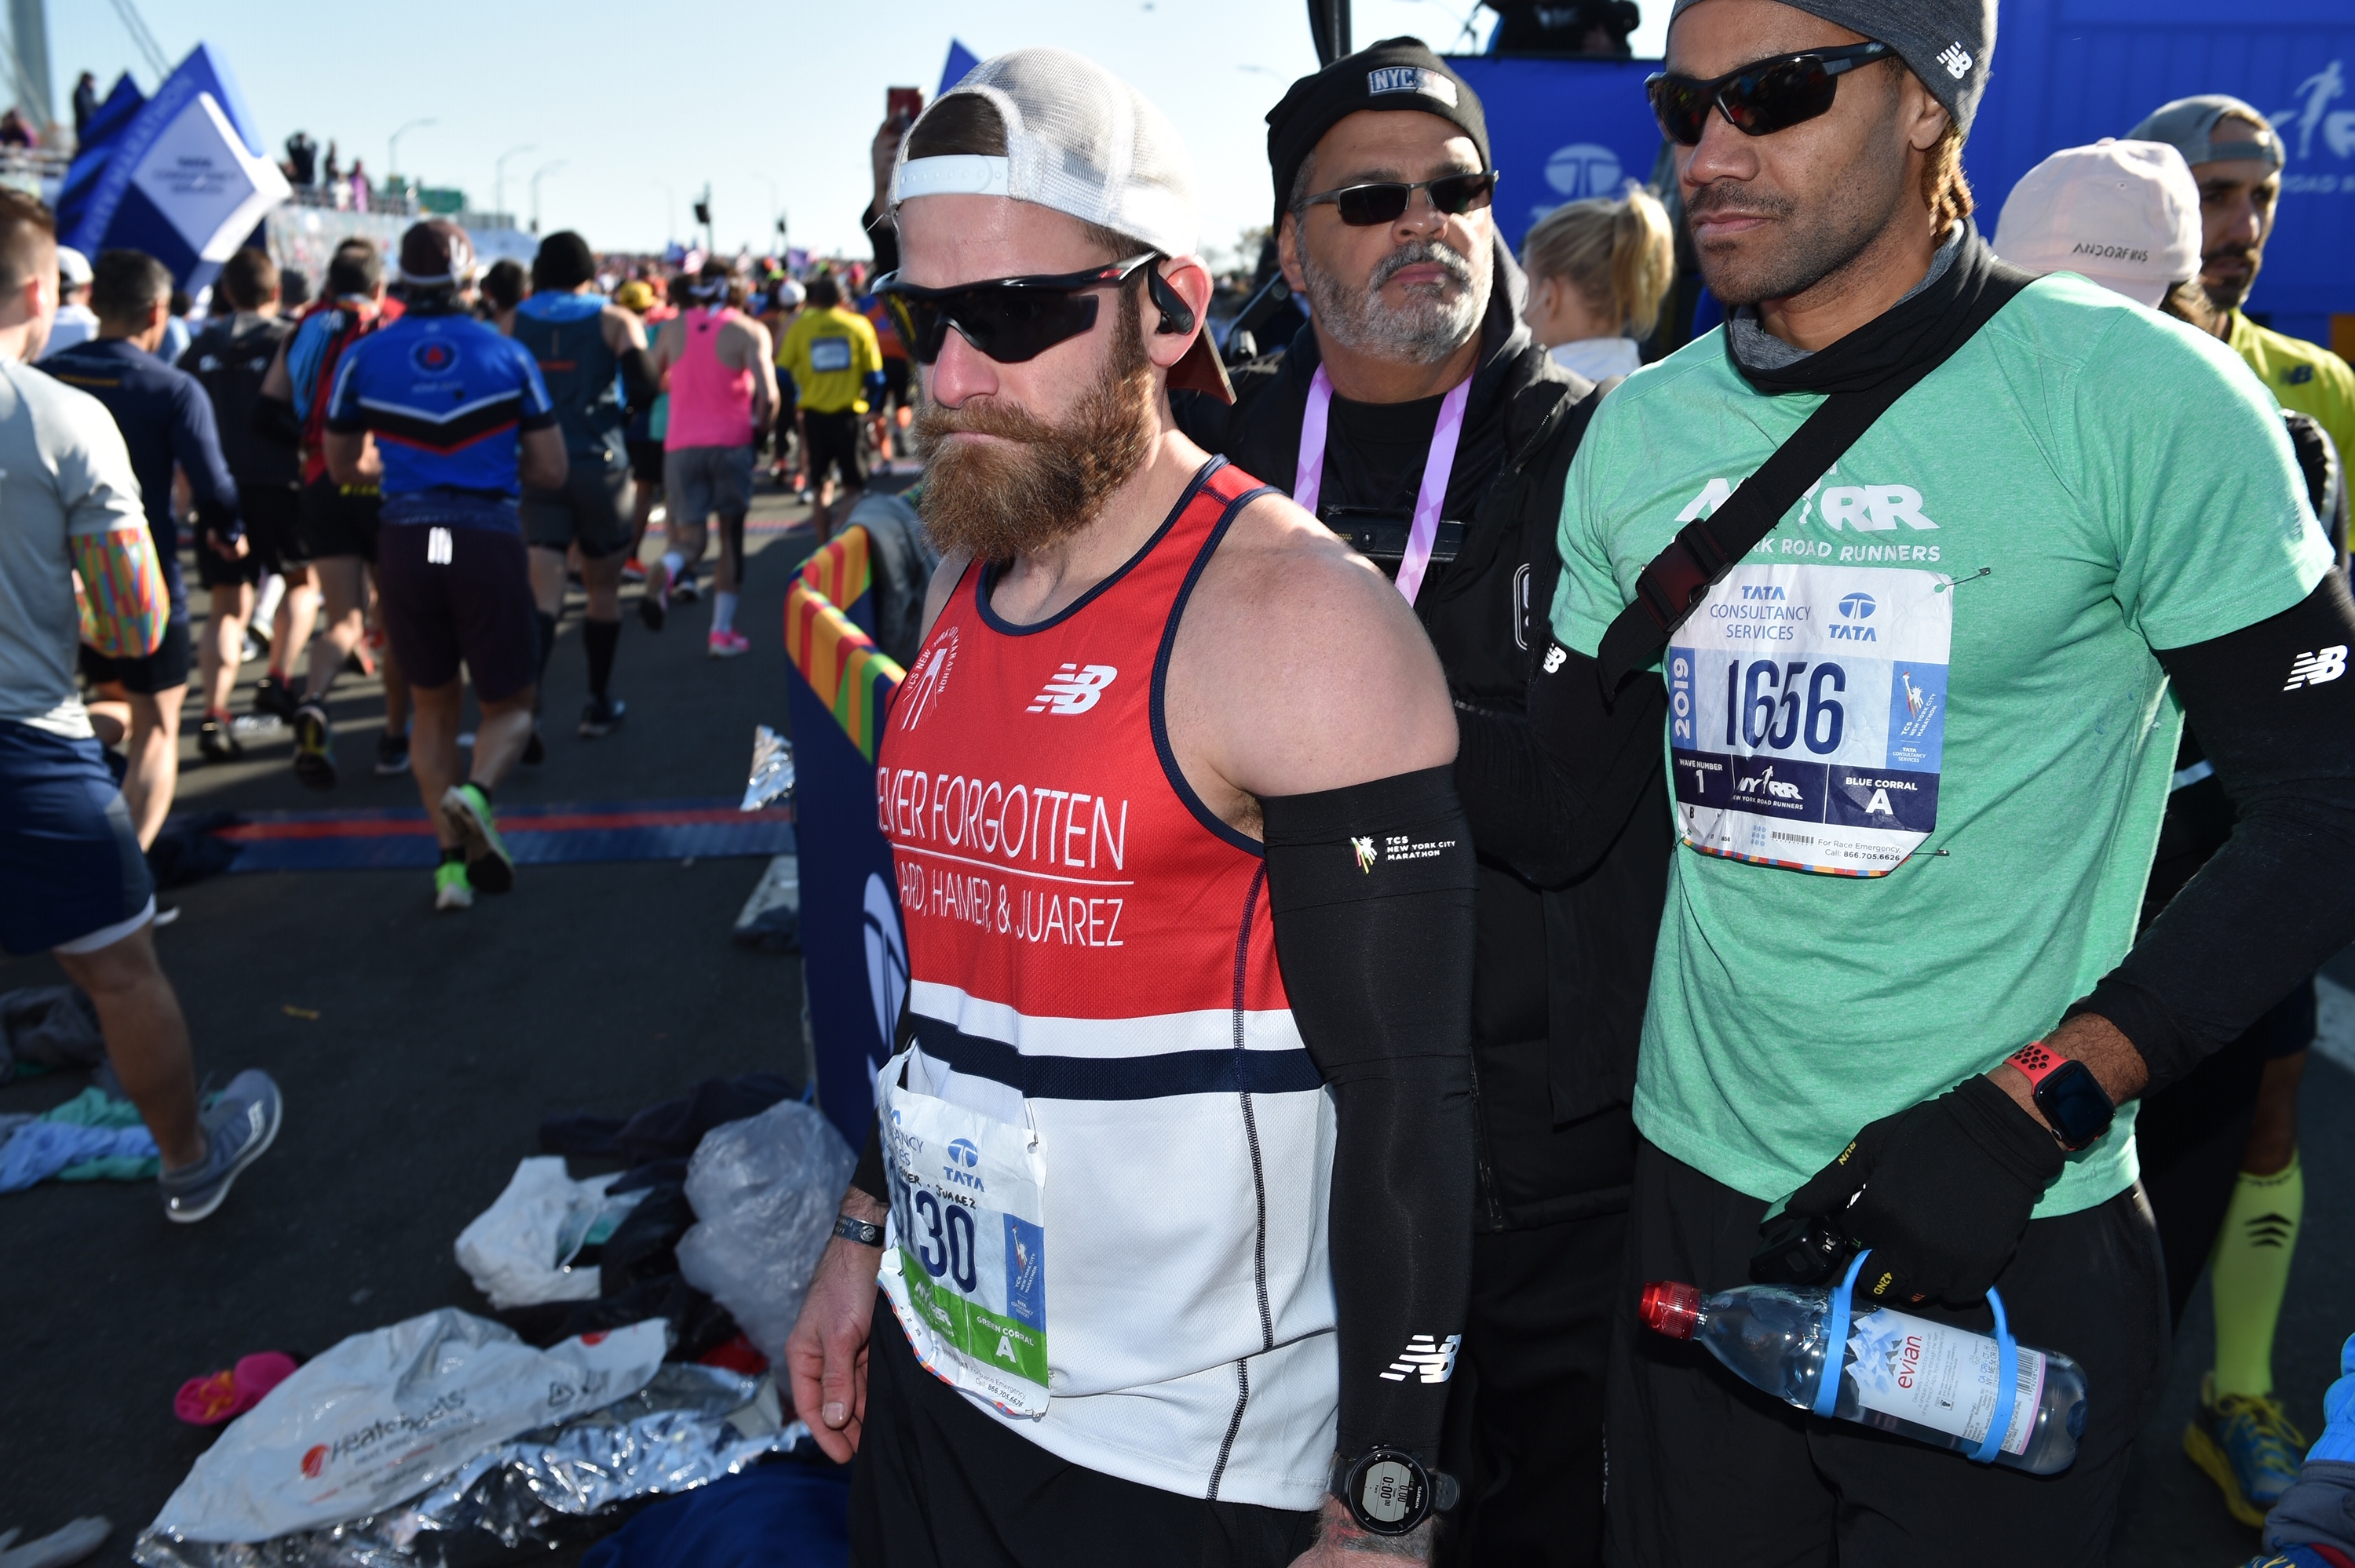 Micah Herndon, left, and his coach Roberto Mandje of NYRR, at the start of the TCS NYC Marathon.